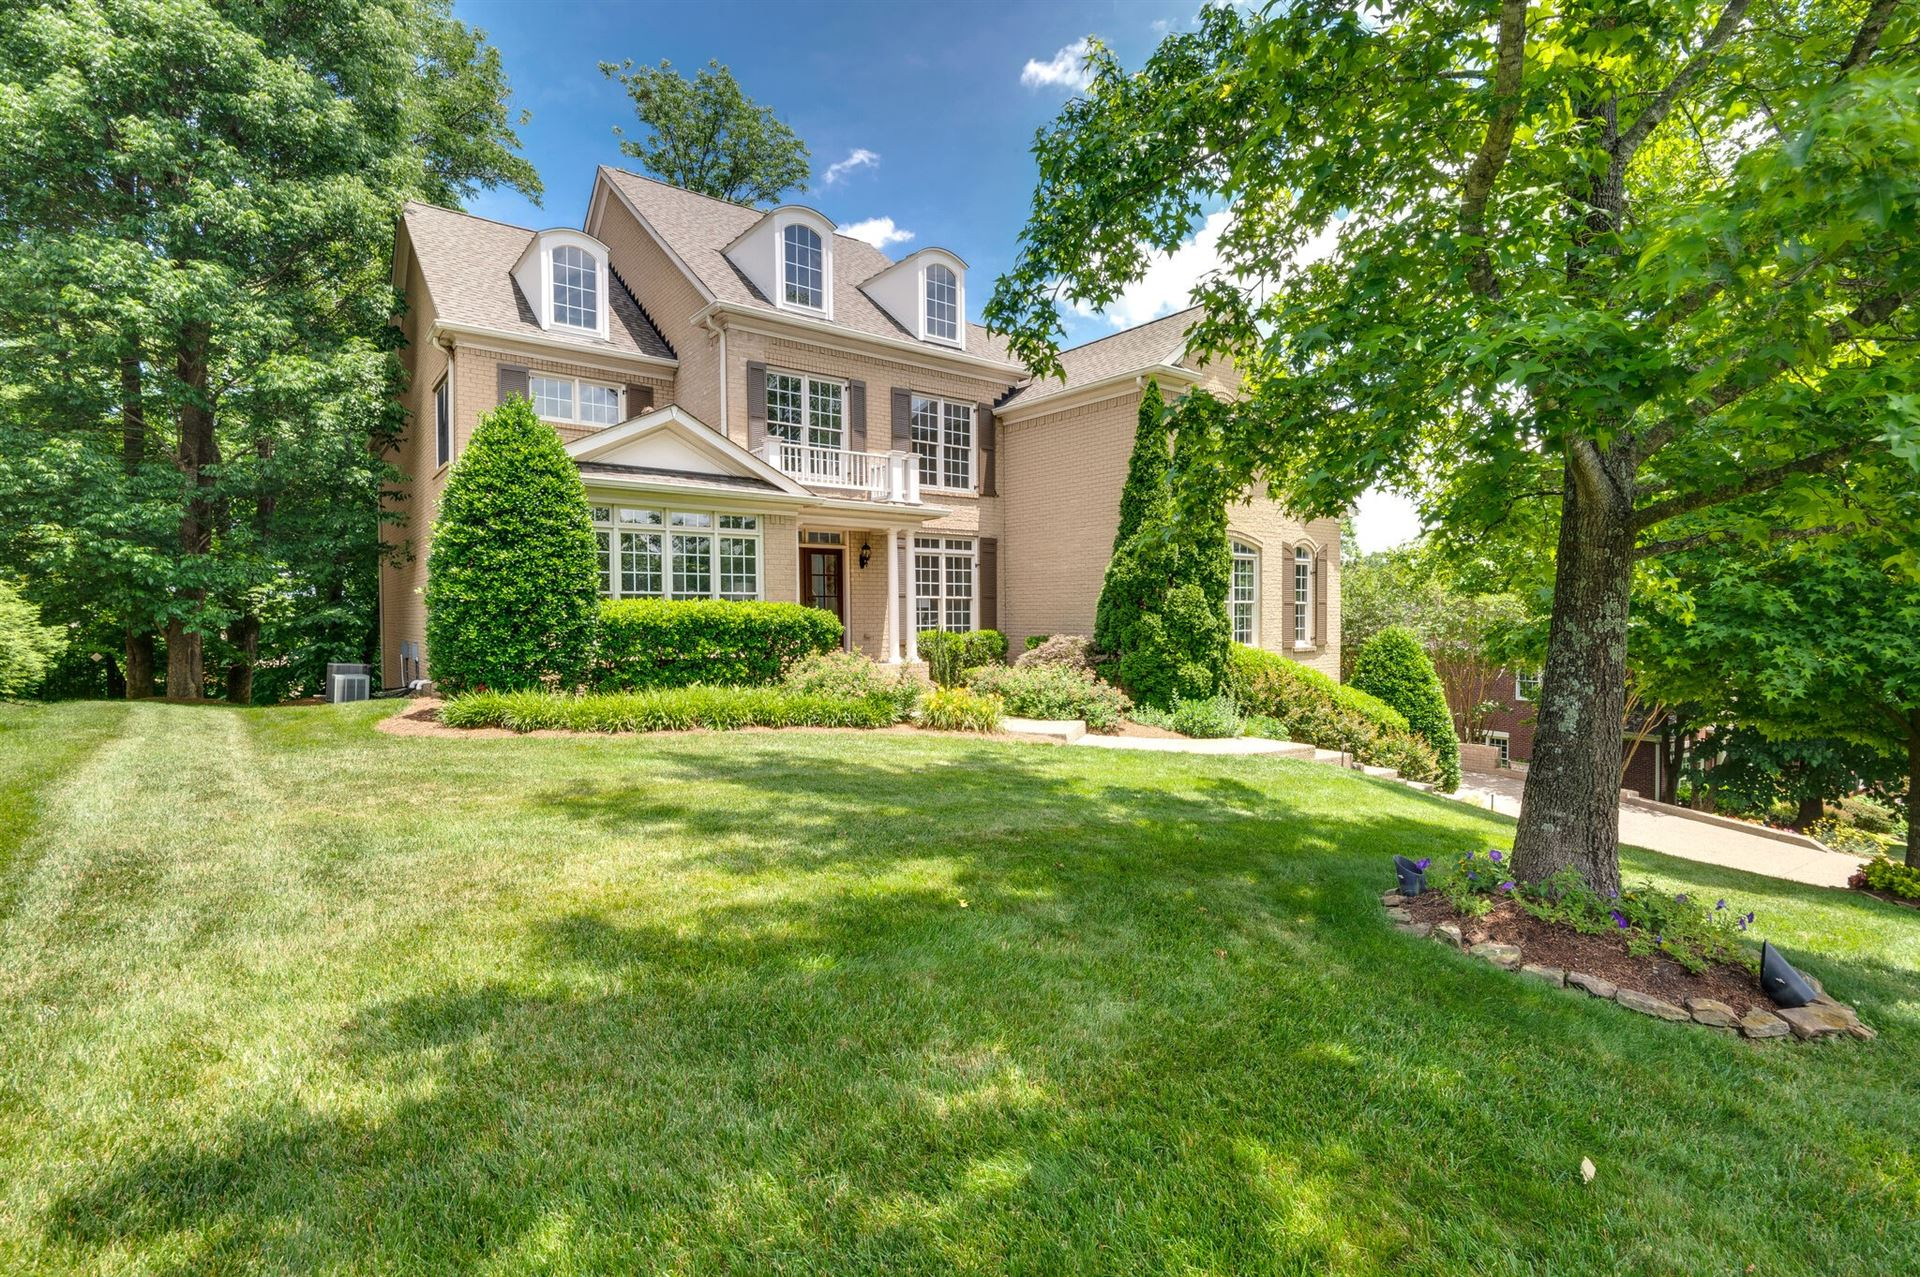 96 Governors Way, Brentwood, TN 37027 - MLS#: 2260761